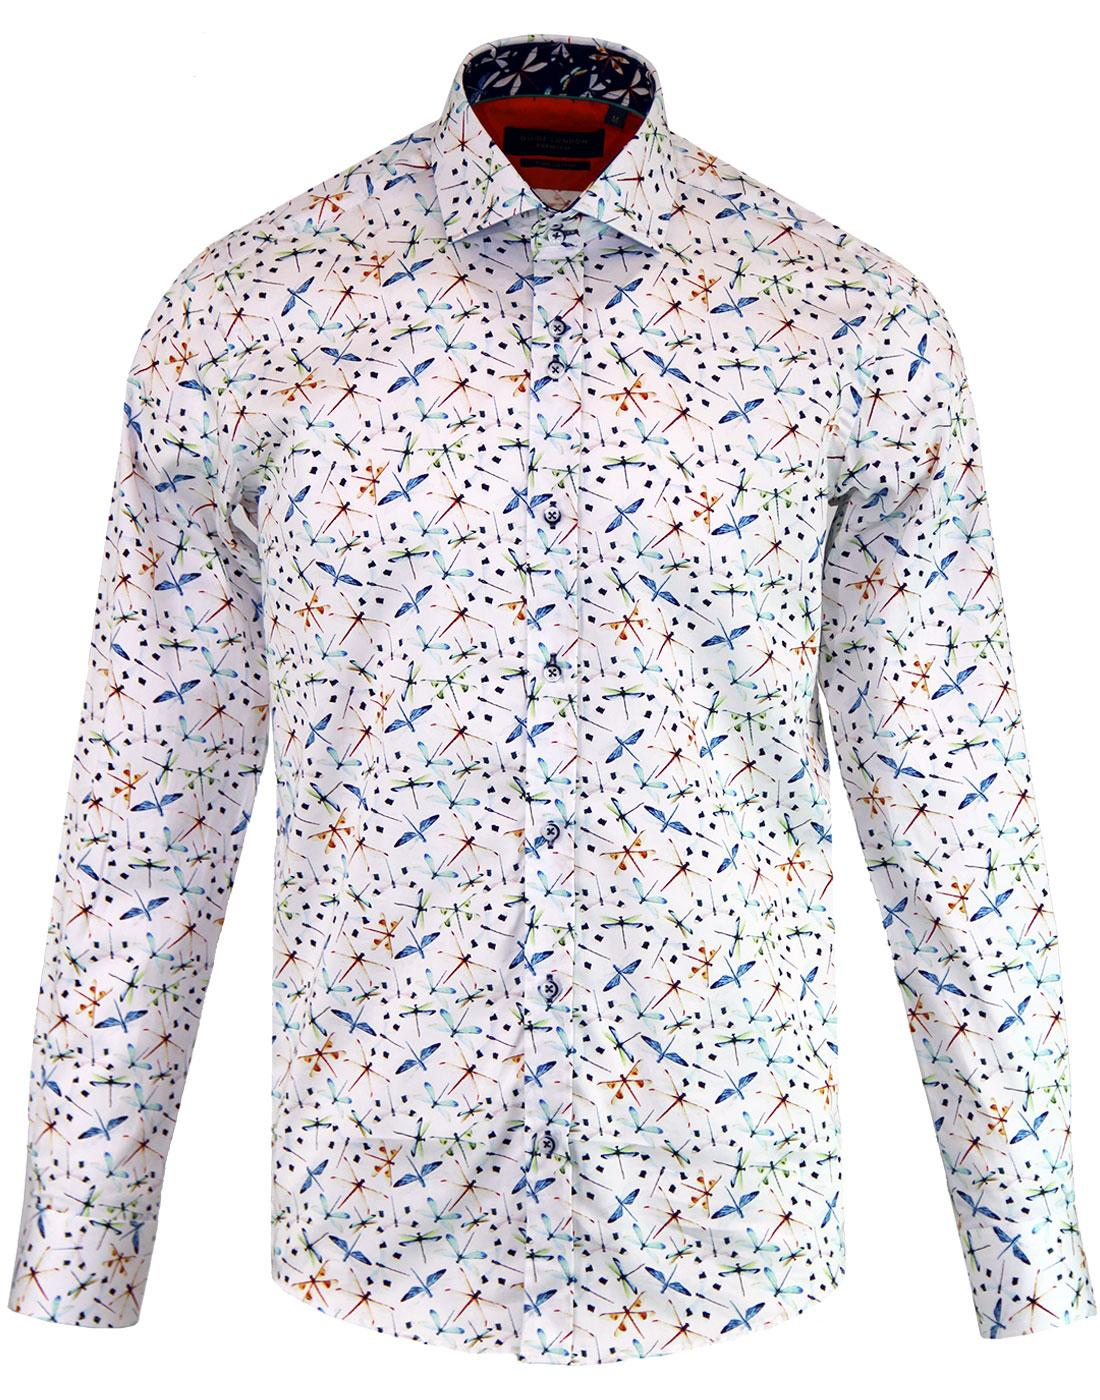 GUIDE LONDON Mens 60's Mod Dragonfly Print Shirt W